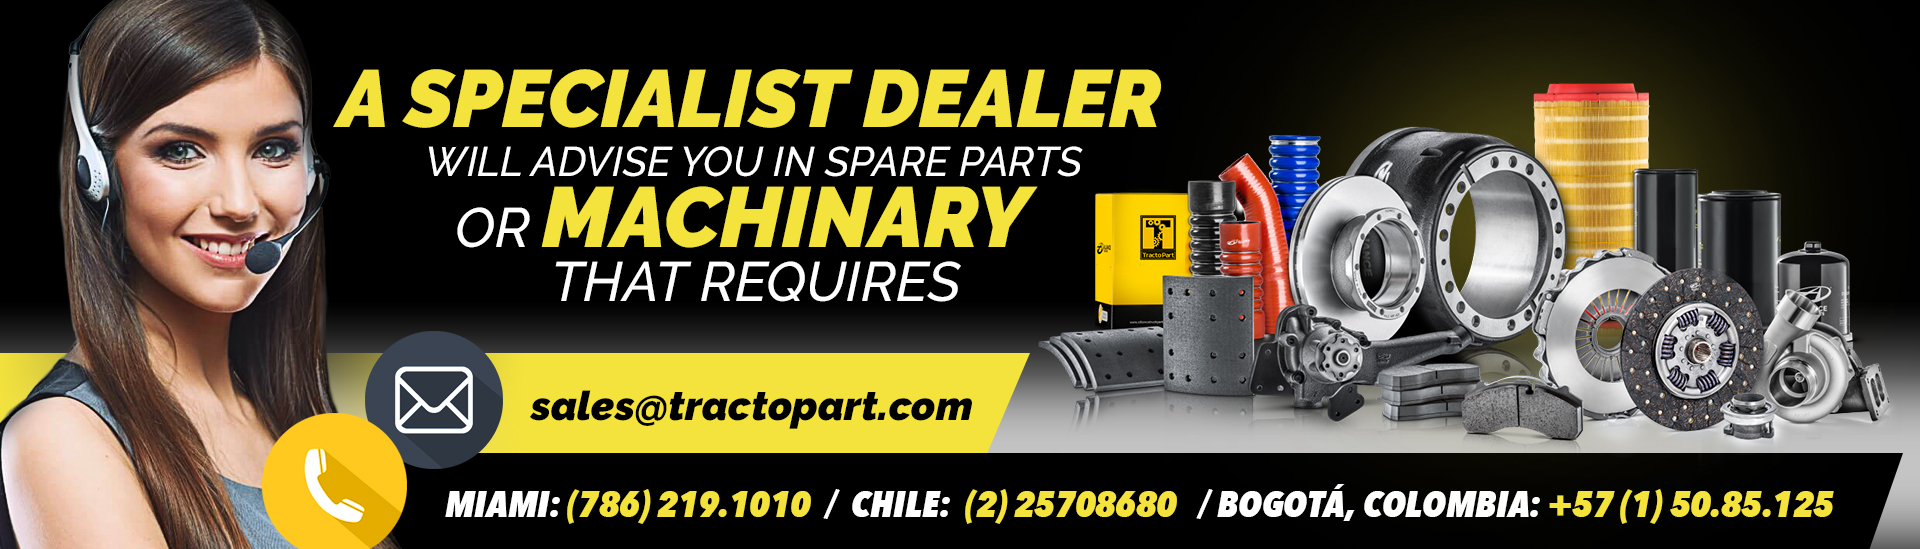 Tractopart |Parts for Heavy Equipment in Miami, Fl